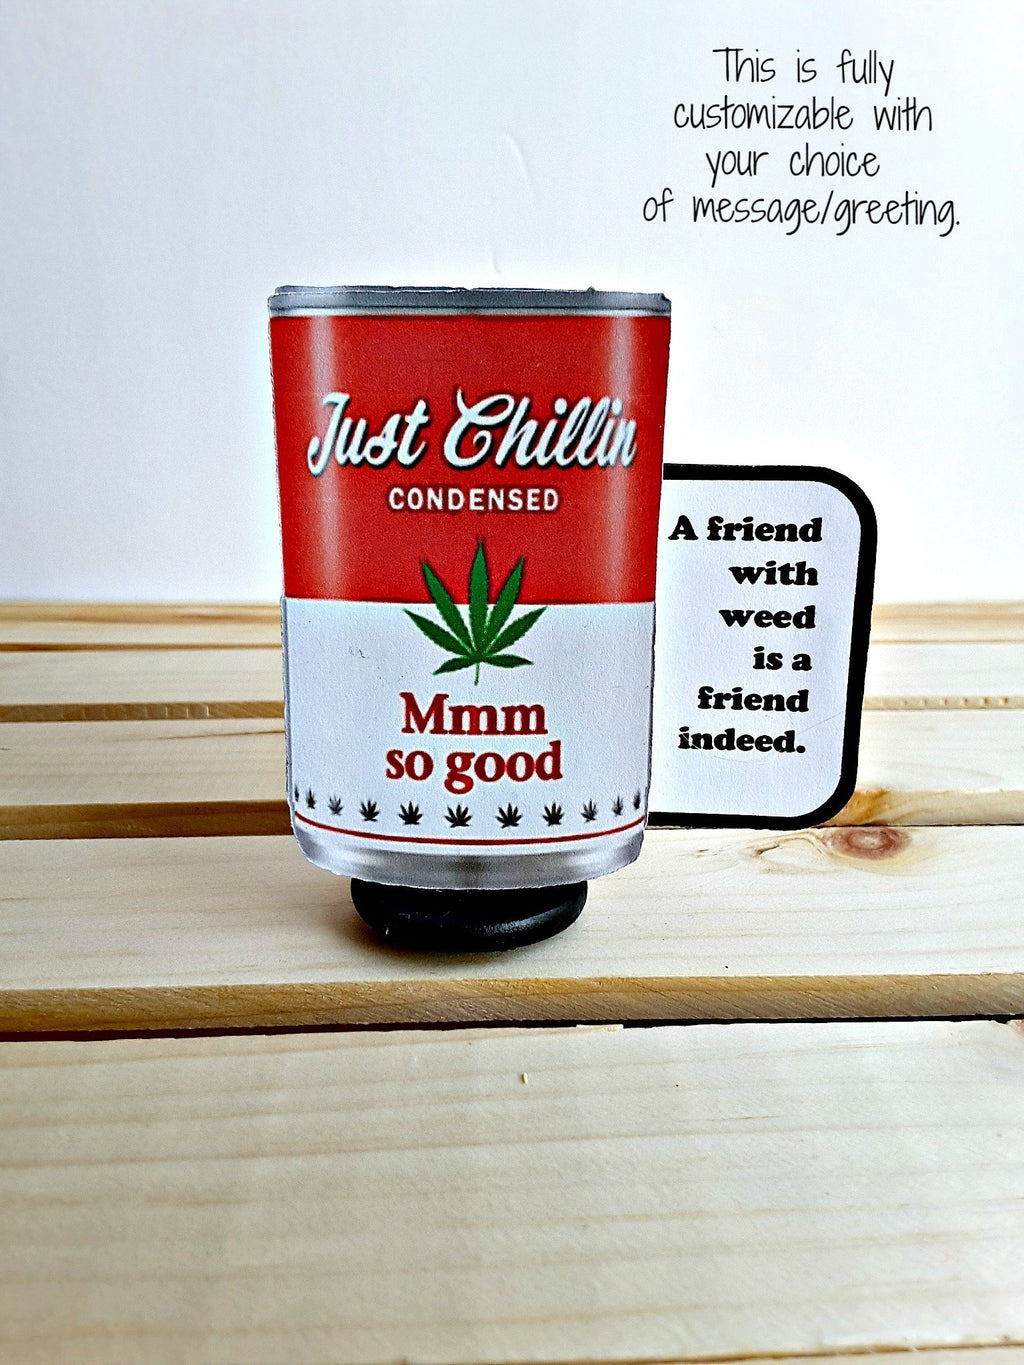 Personalized Mmm So Good Soup Can 3D All-Occasion Card - Choice of 2 versions - TheLastWordBish.com